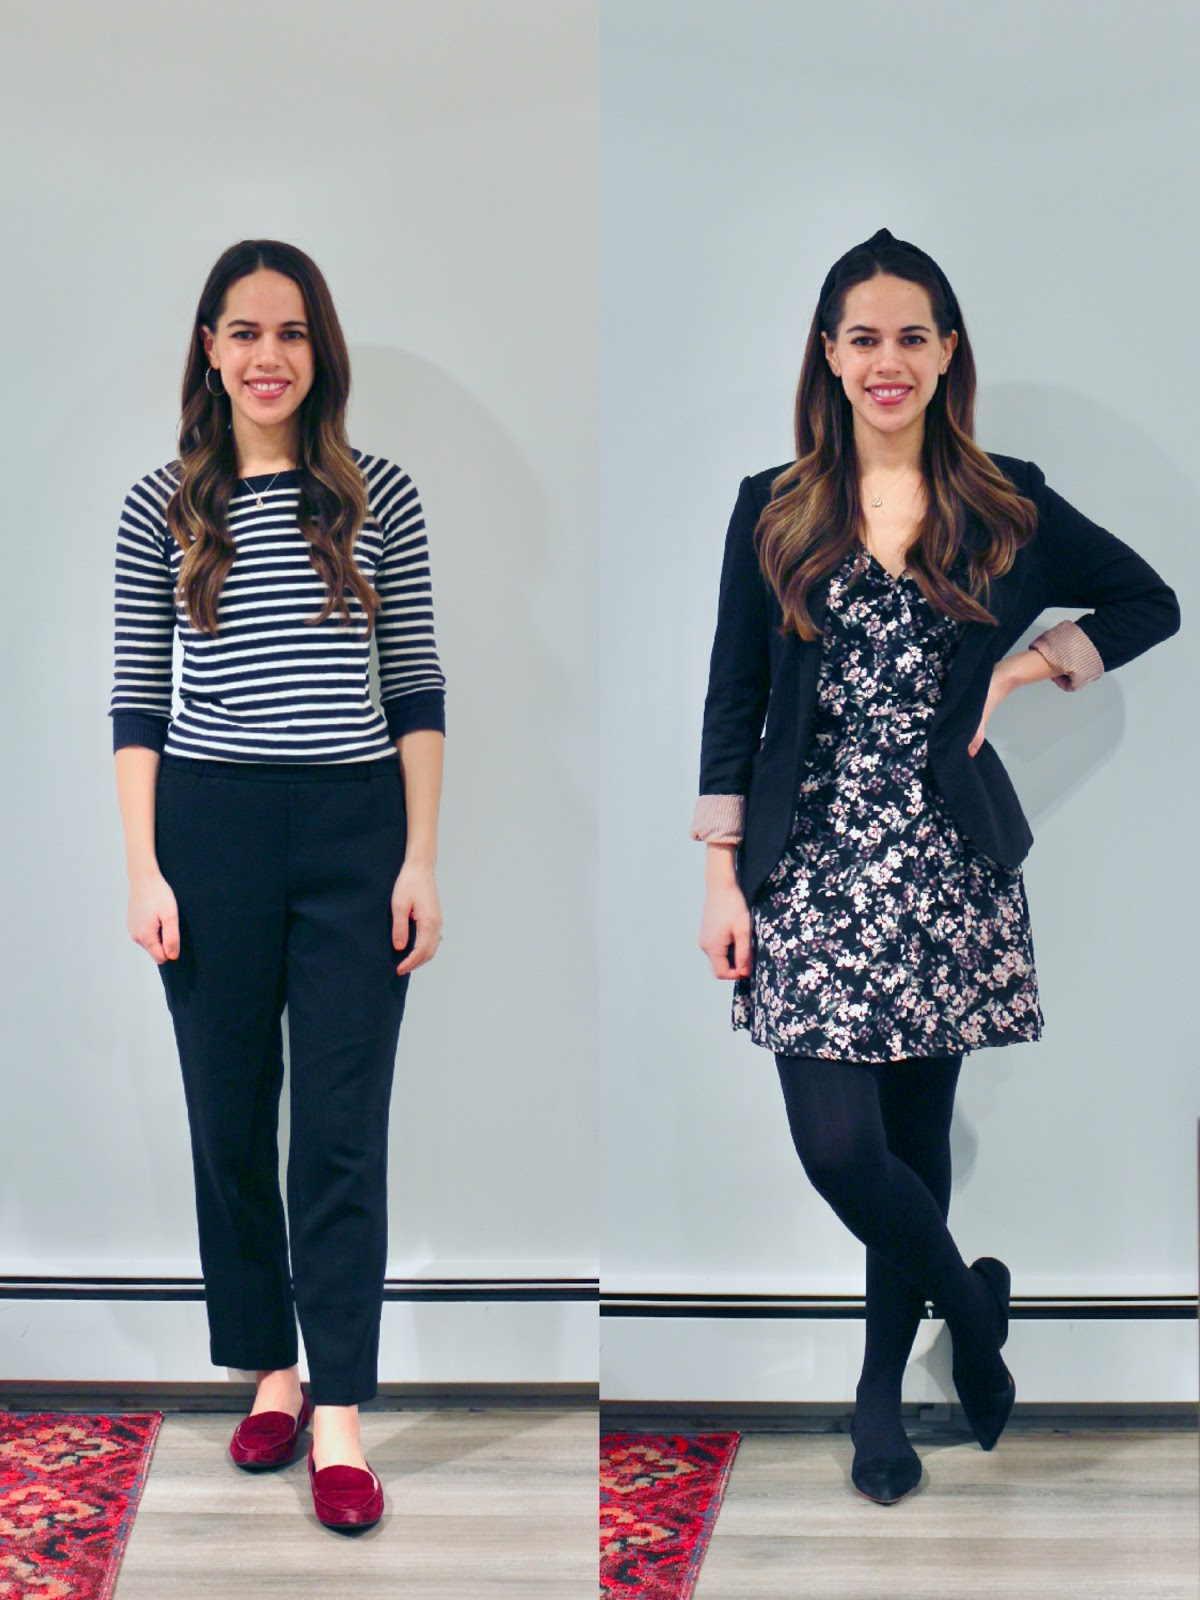 Jules in Flats - January Outfits Week 3 (Business Casual Winter Workwear on a Budget)